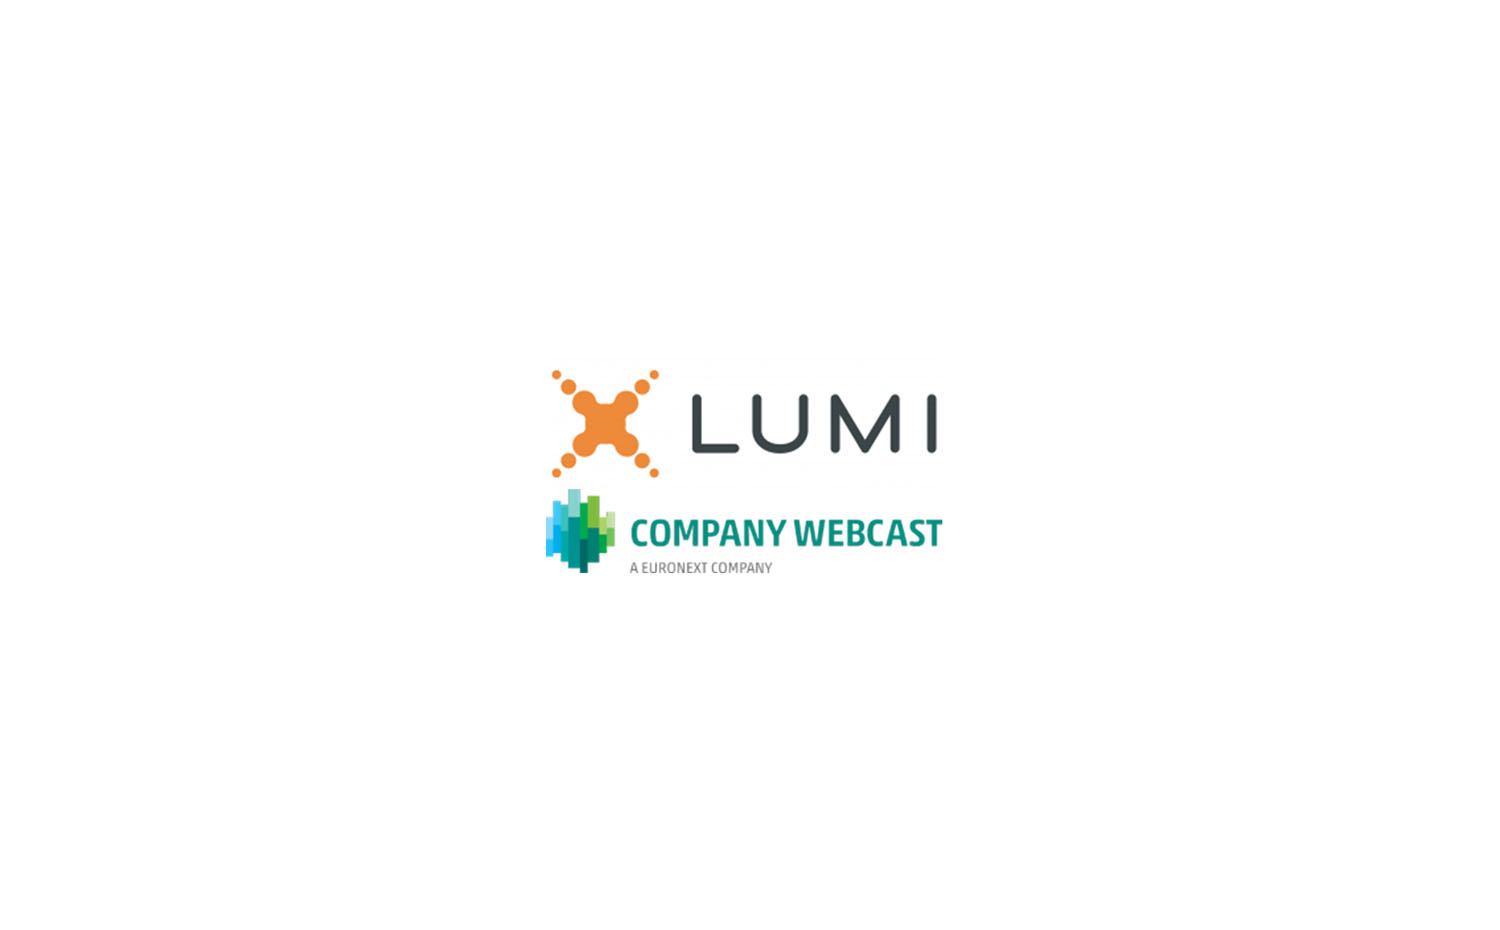 Lumi Holdings Limited